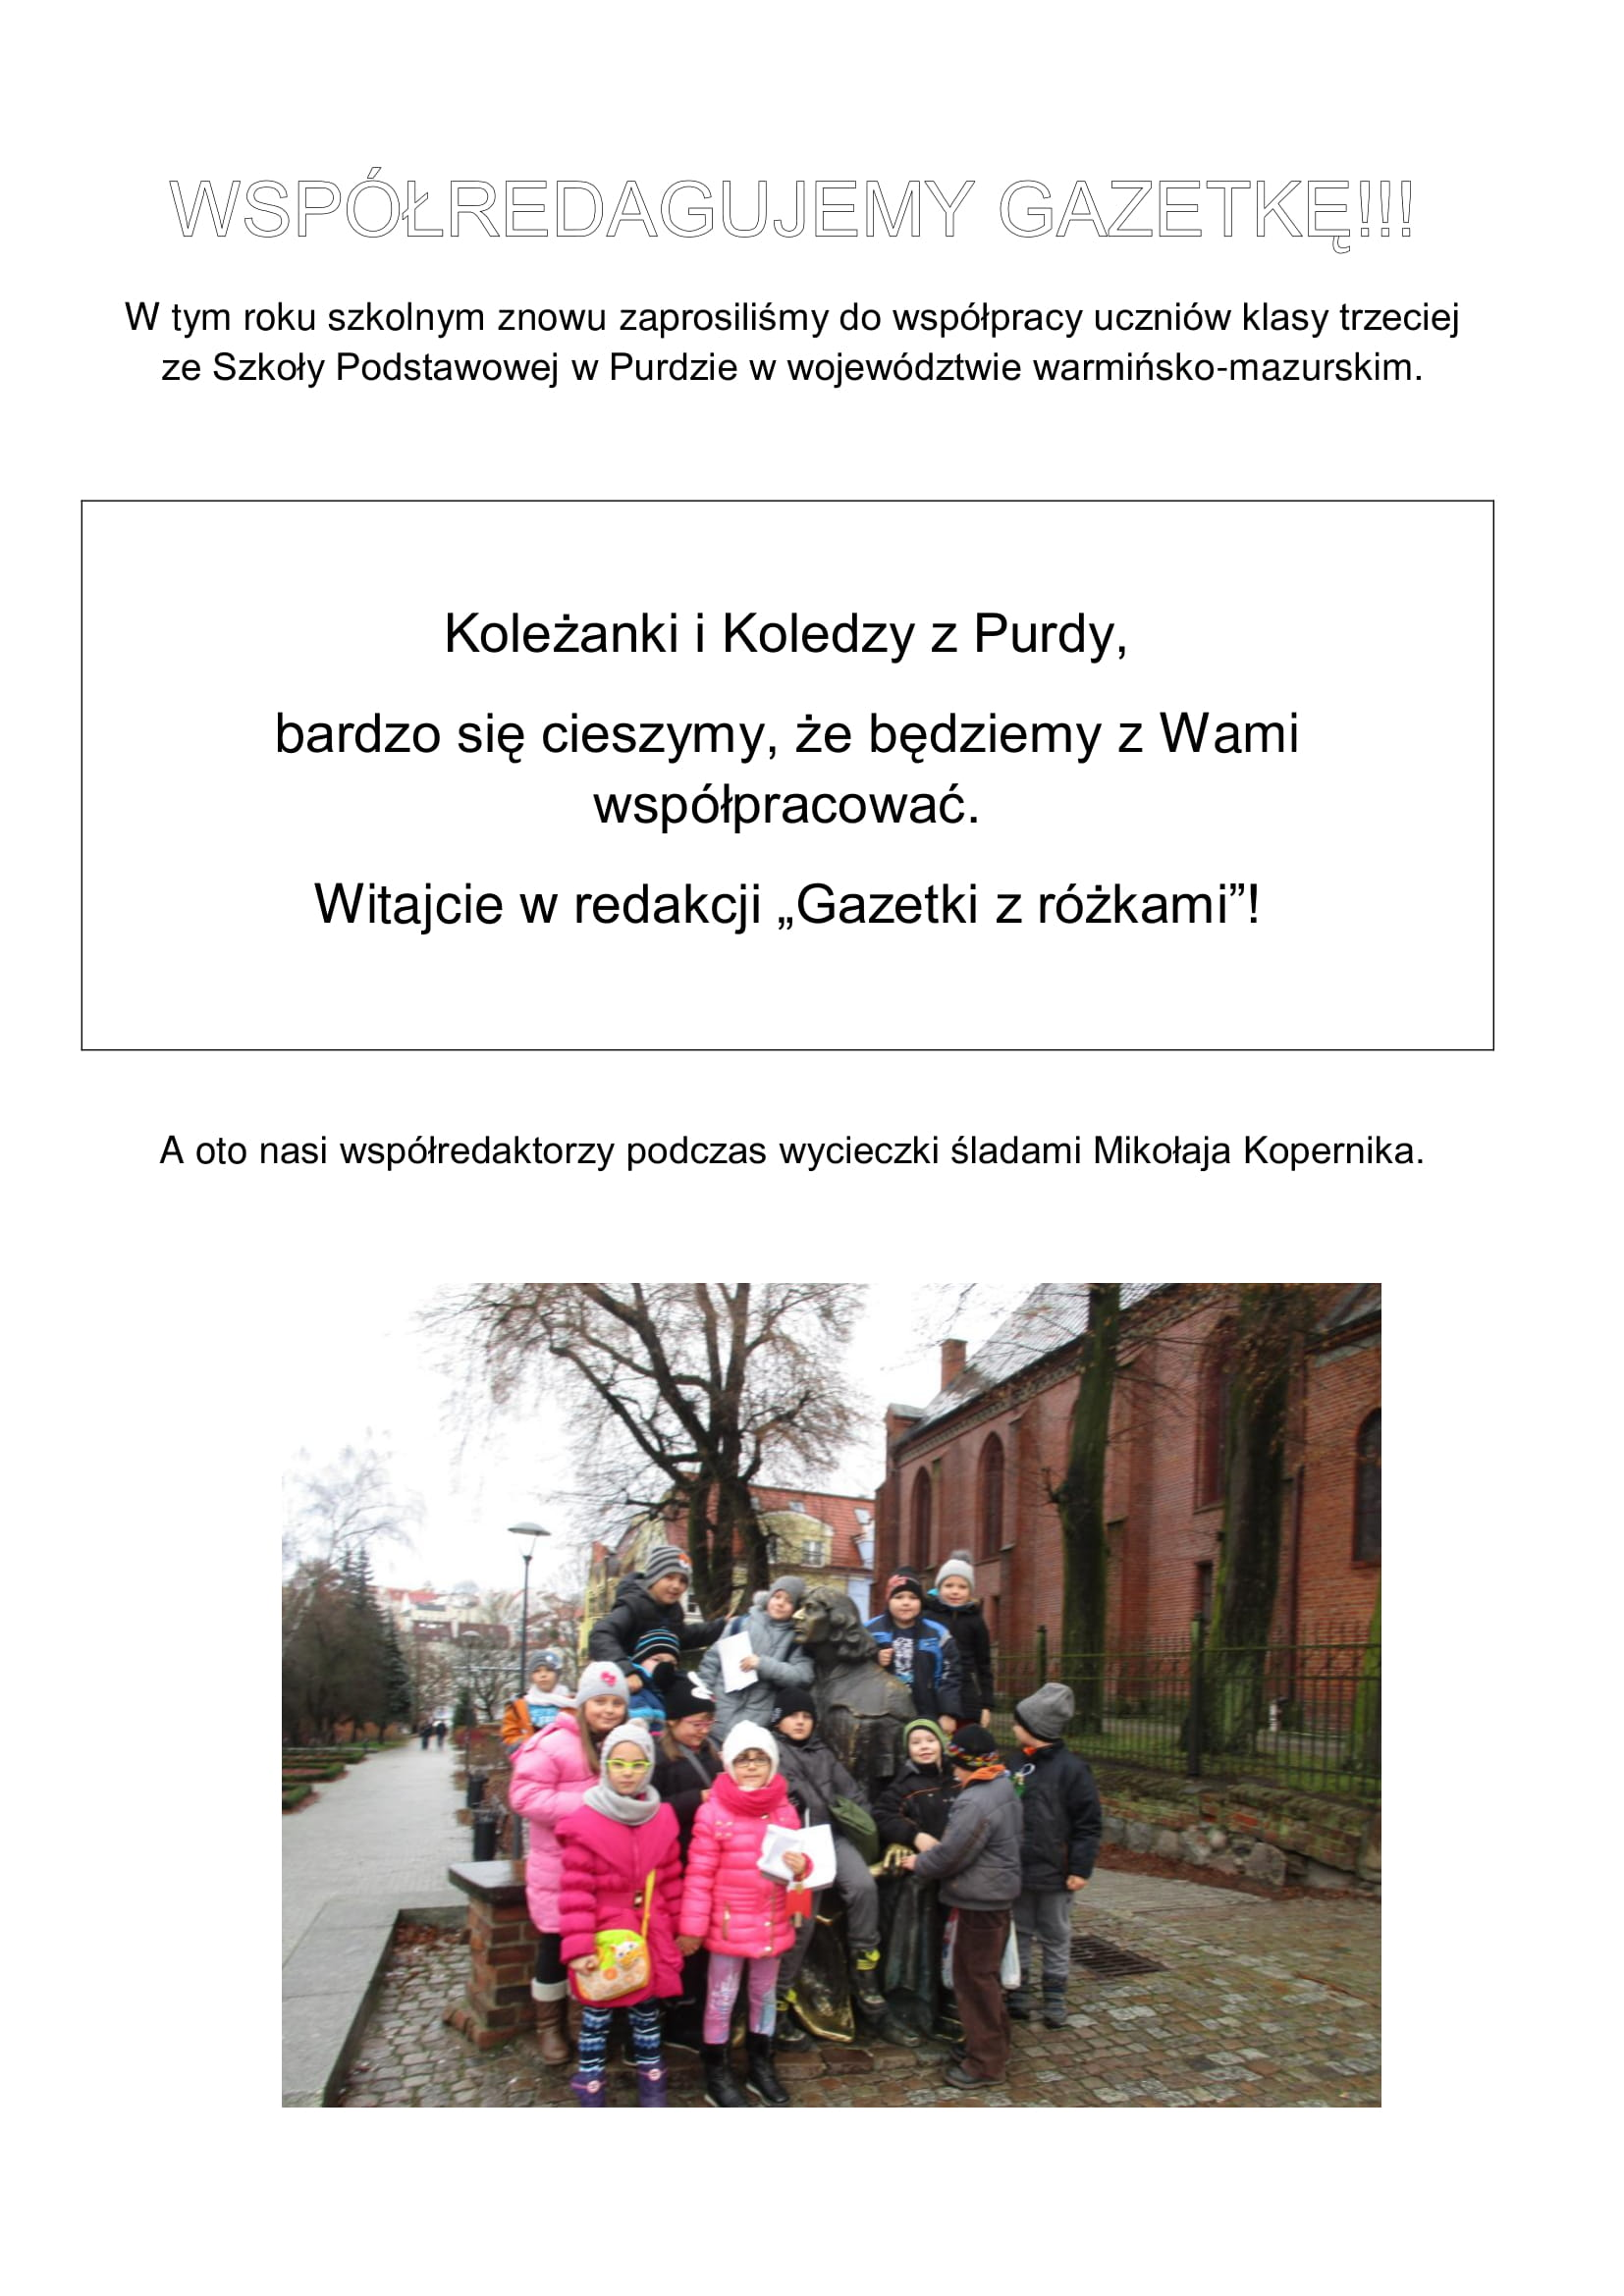 http://sp24sto.edu.pl/wp-content/uploads/sites/3/2018/02/GAZETKA-Z-RÓŻKAMI-grudzień-2017-nr-9-05.jpg